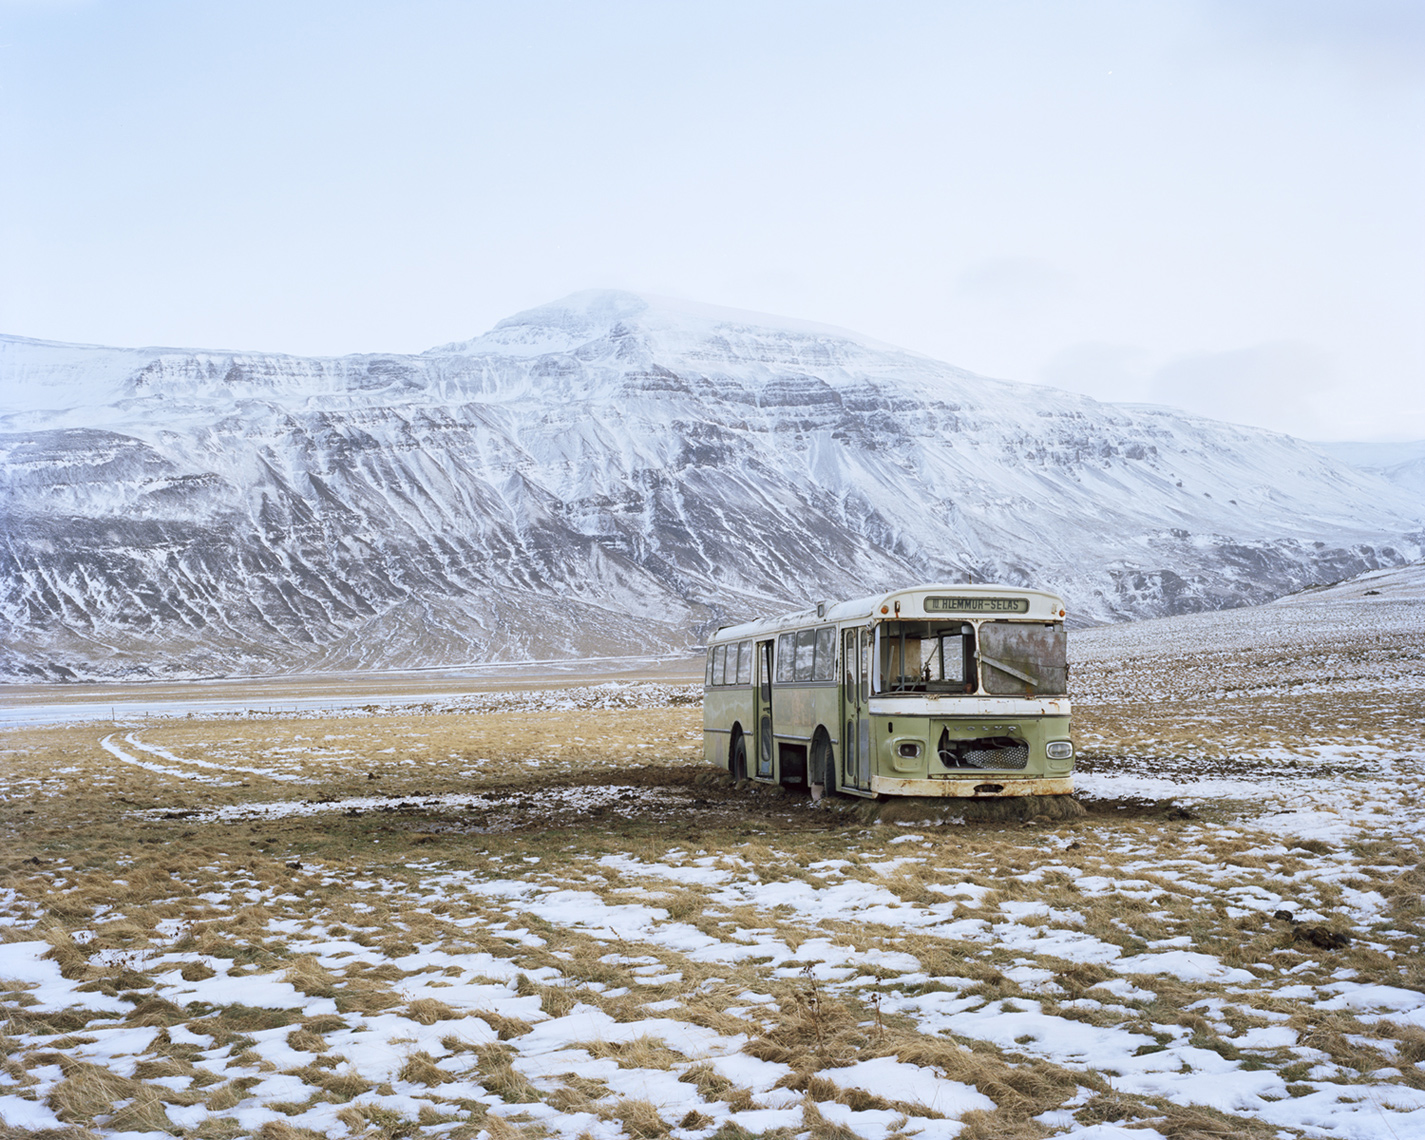 hellotpd_Jonathan_Smith_Iceland_Residency_43